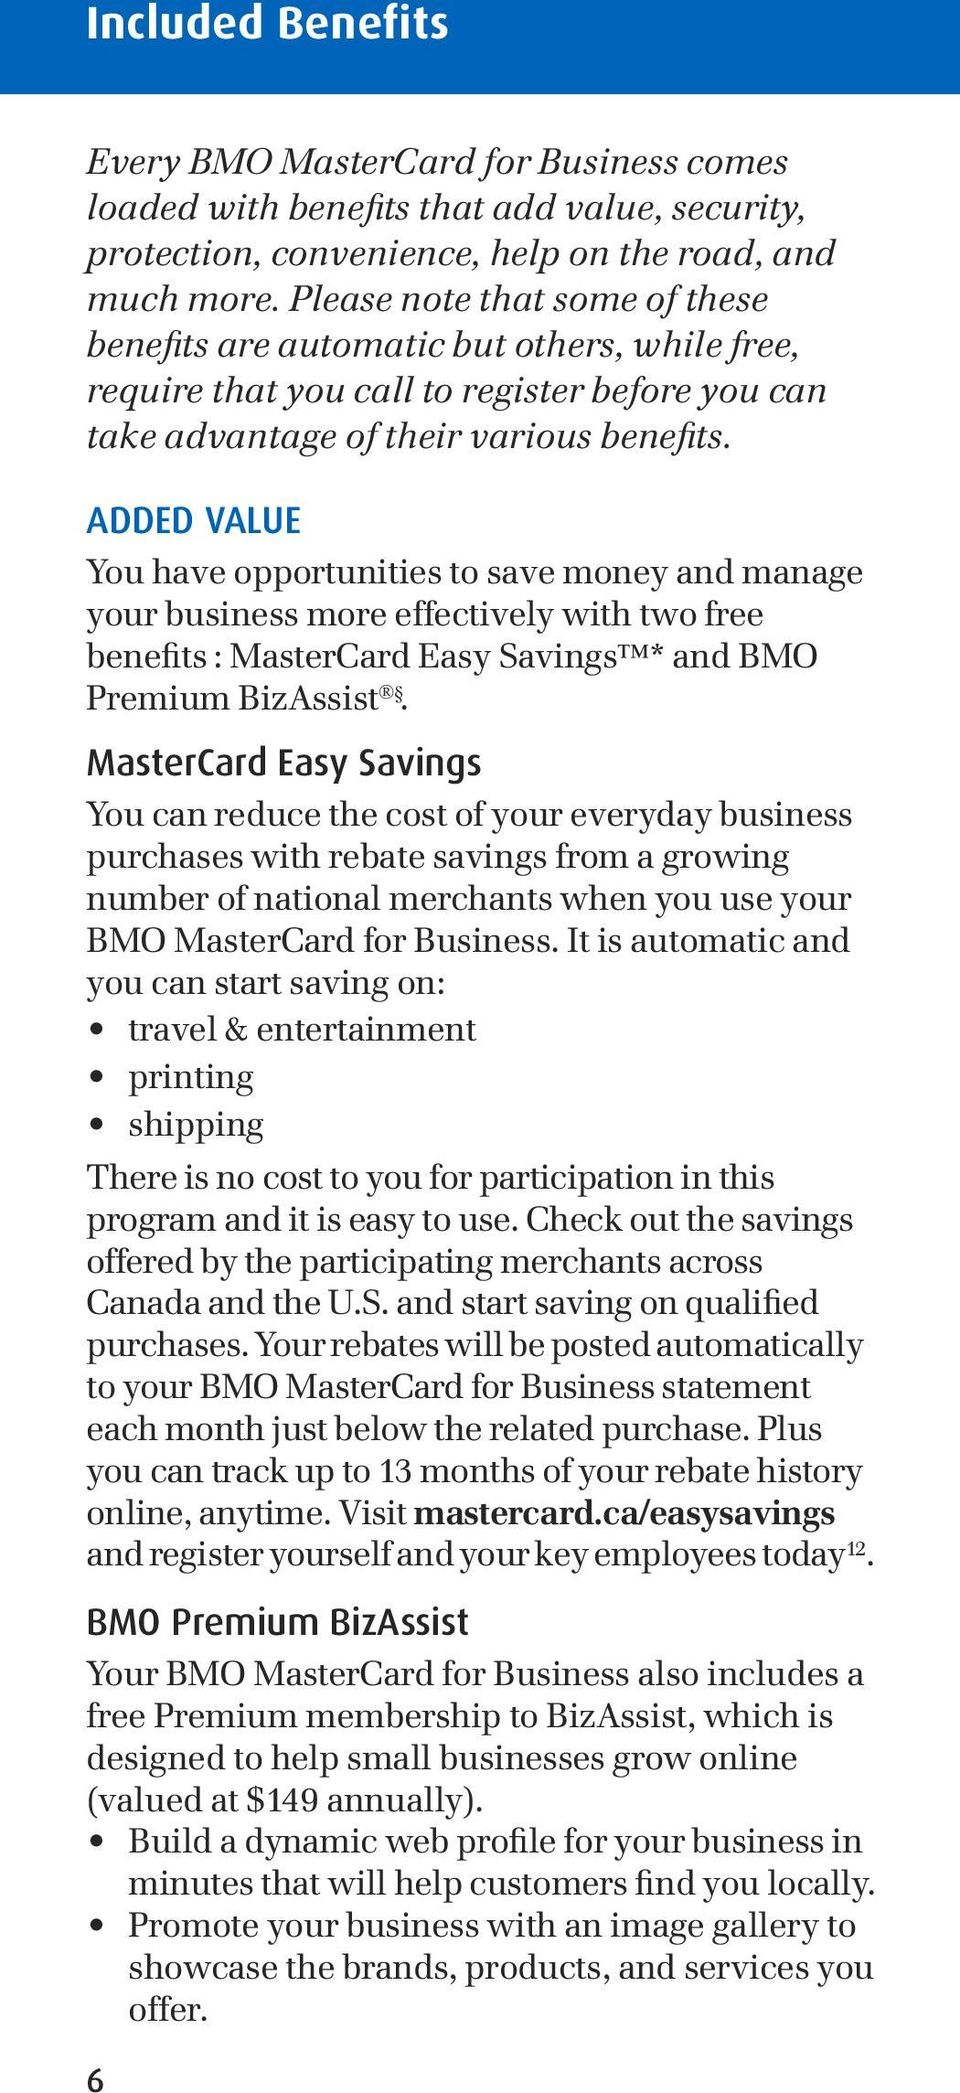 ADDED VALUE You have opportunities to save money and manage your business more effectively with two free benefits : MasterCard Easy Savings * and BMO Premium BizAssist.